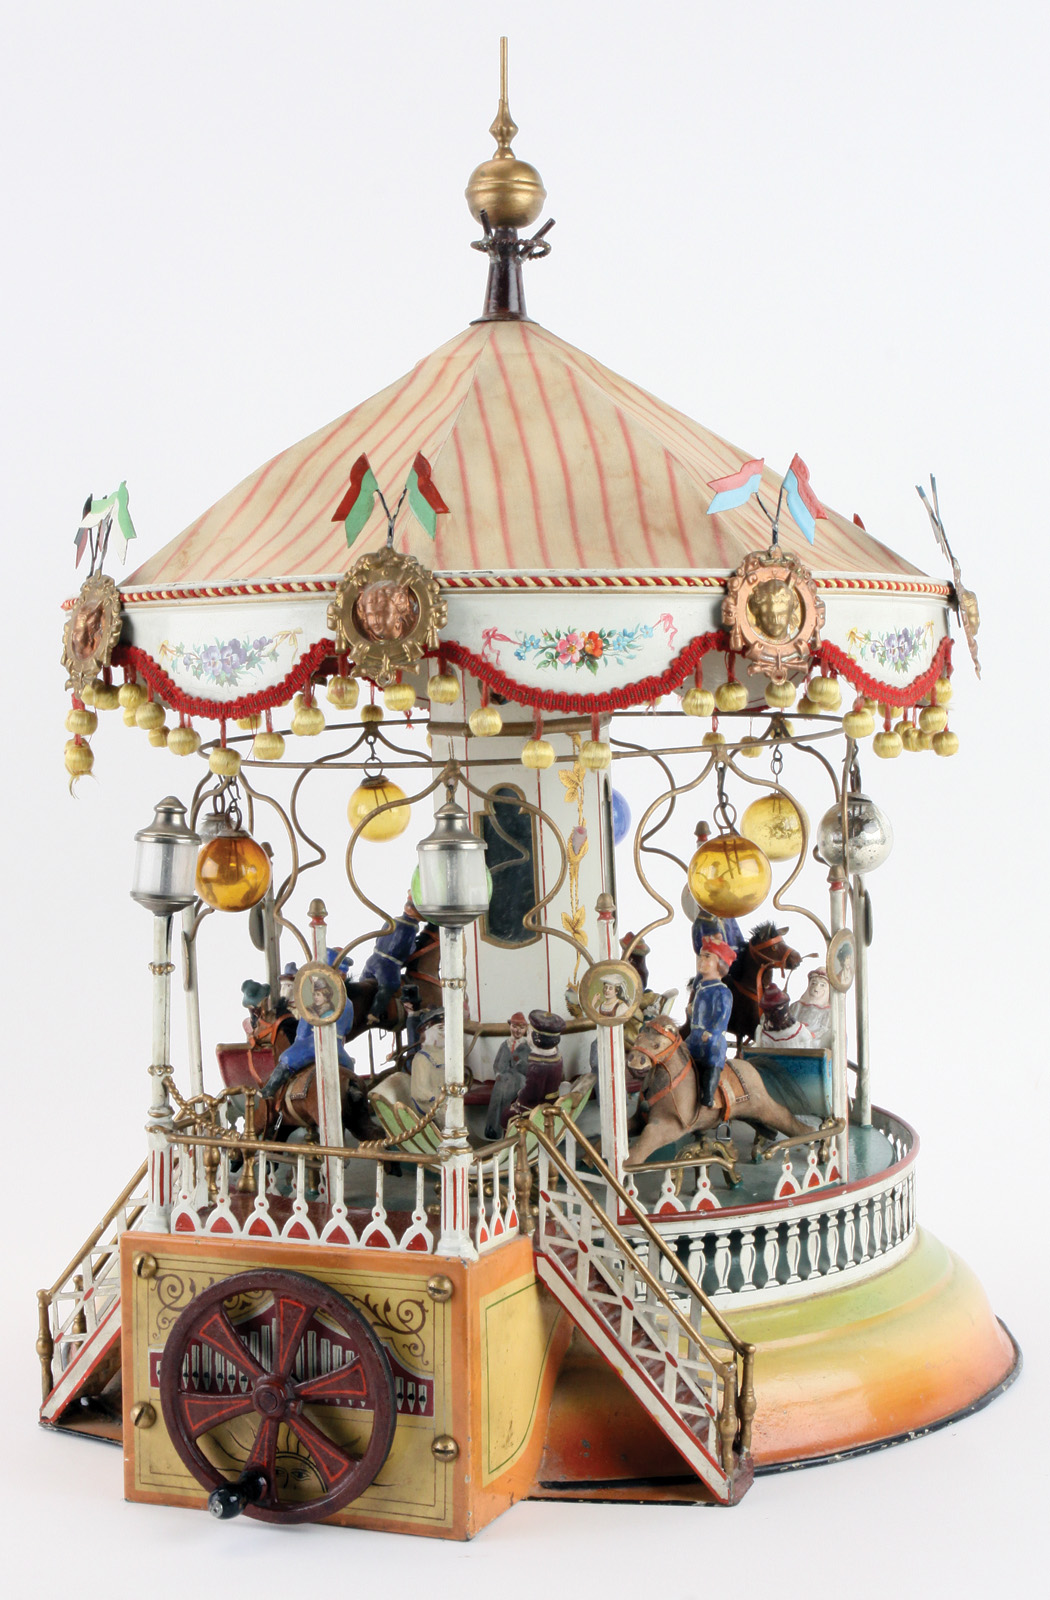 Marklin Toy Carousel